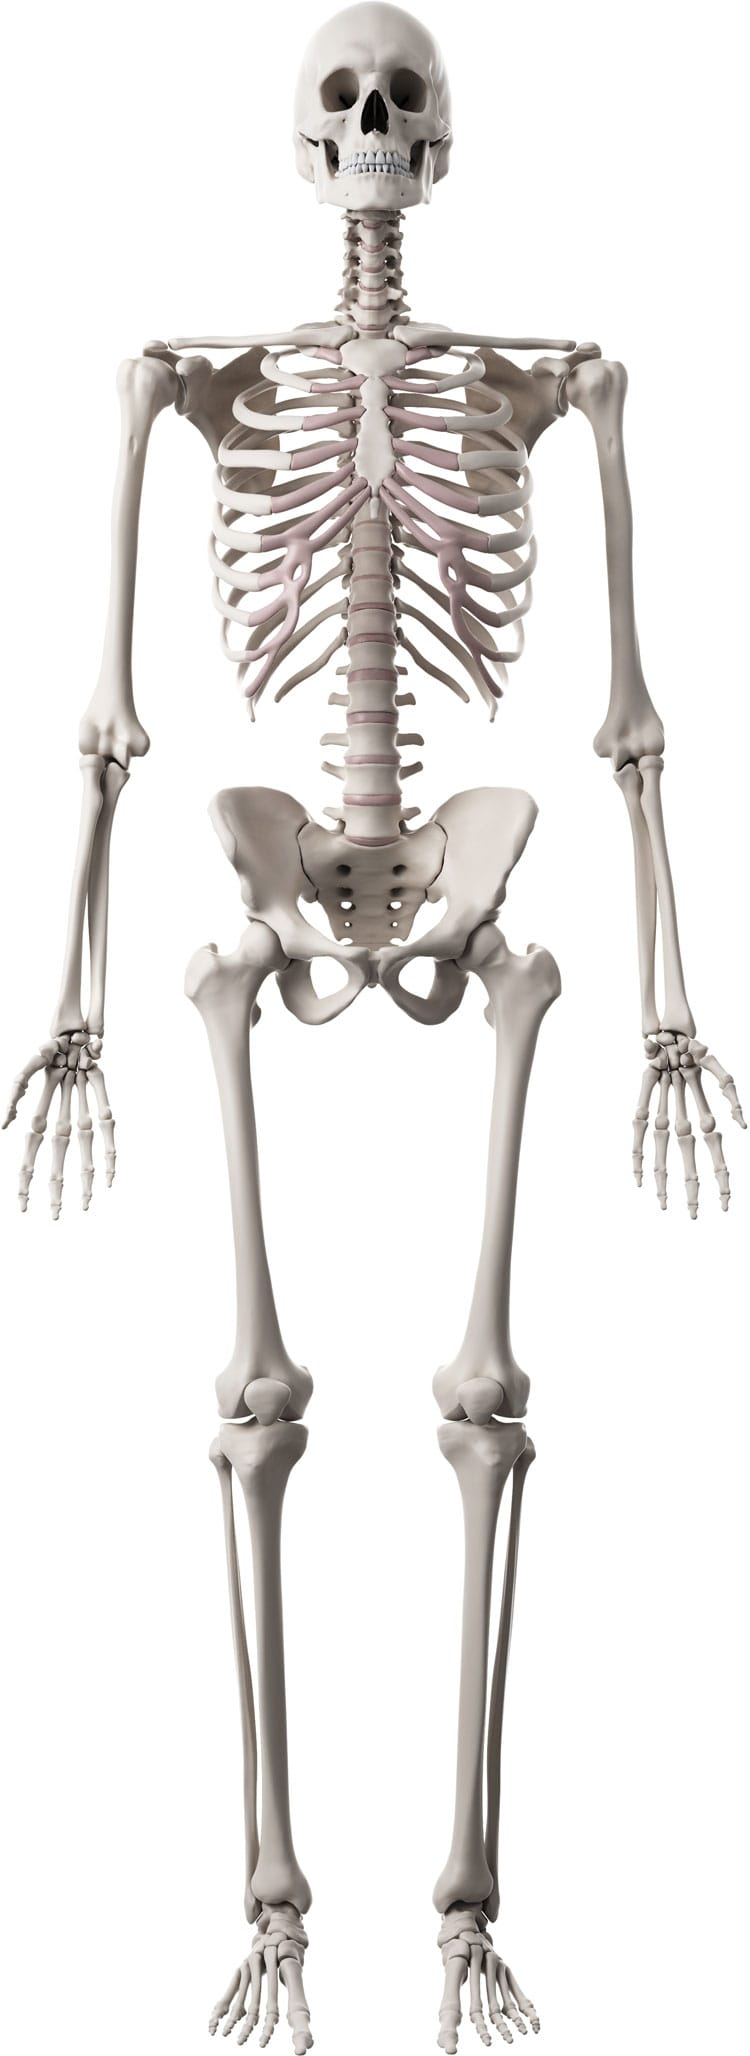 Human Skeleton With Bones Your Health